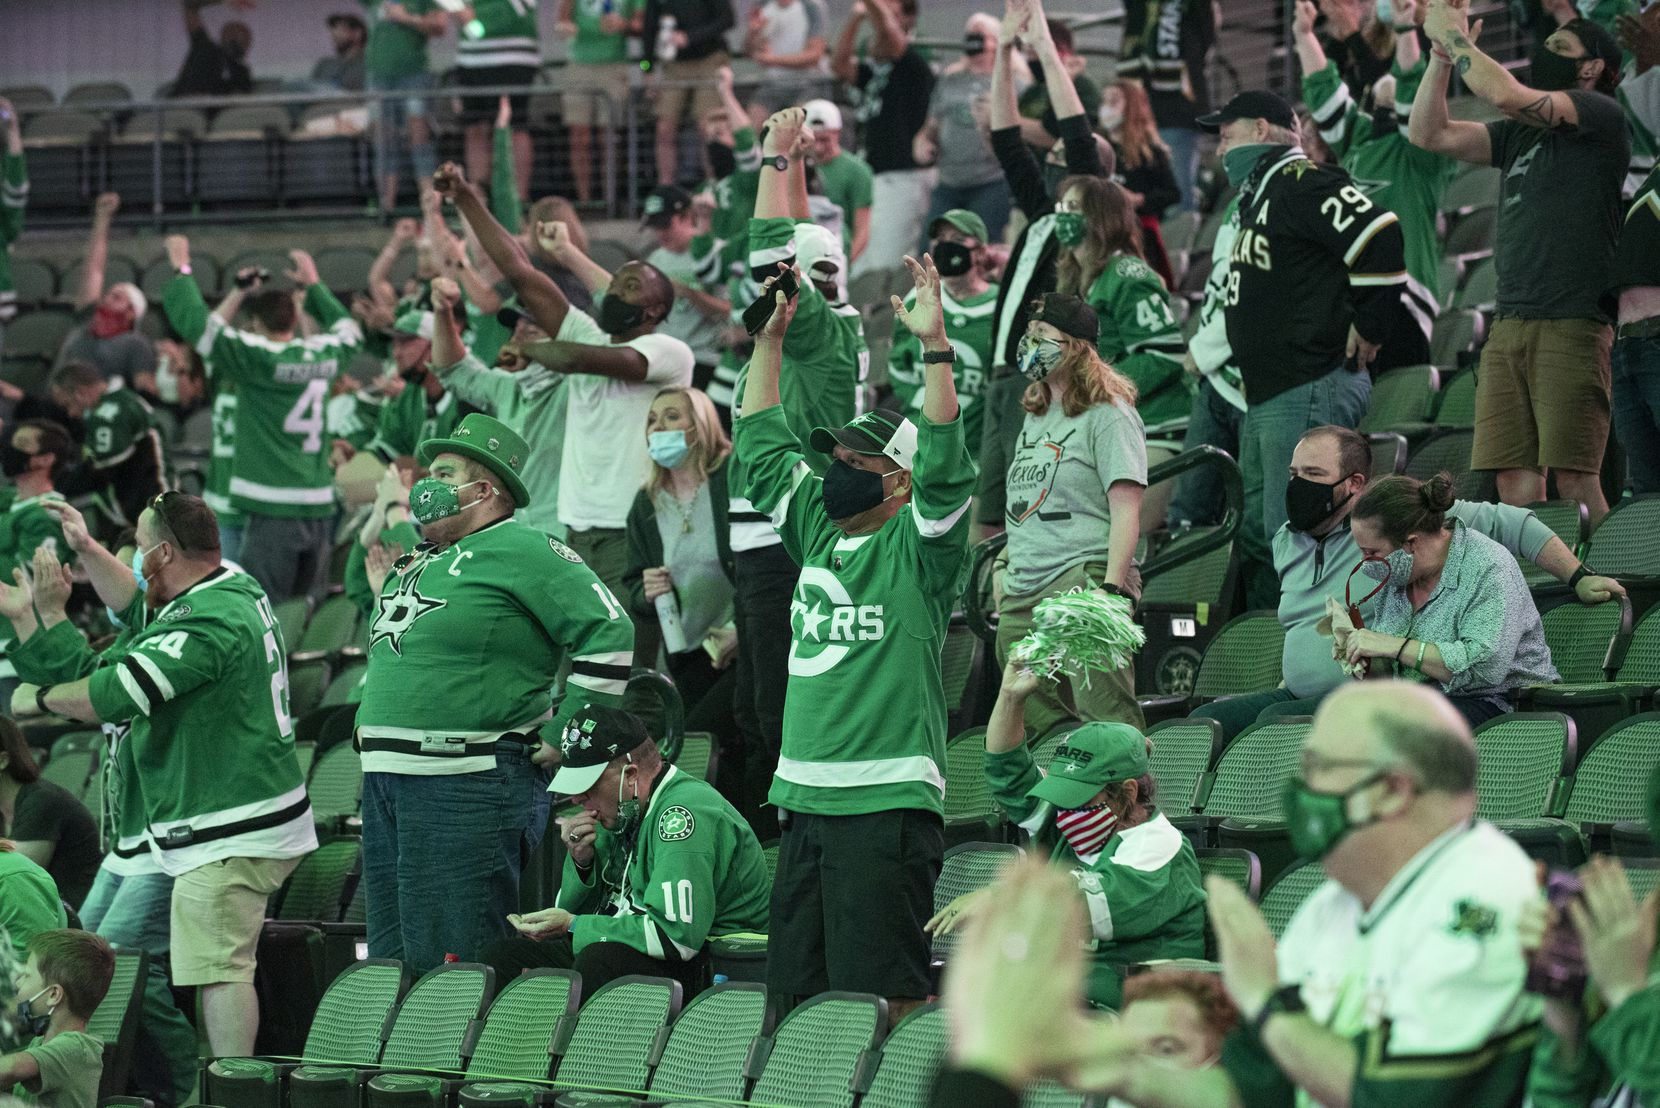 Stars fans react as the Dallas Stars scored a goal in the third period versus the Tampa Bay Lightning during a watch party at the American Airlines Center for game 1 of the Stanley Cup Final, Saturday, on Sept. 19, 2020. Ben Torres/Special Contributor